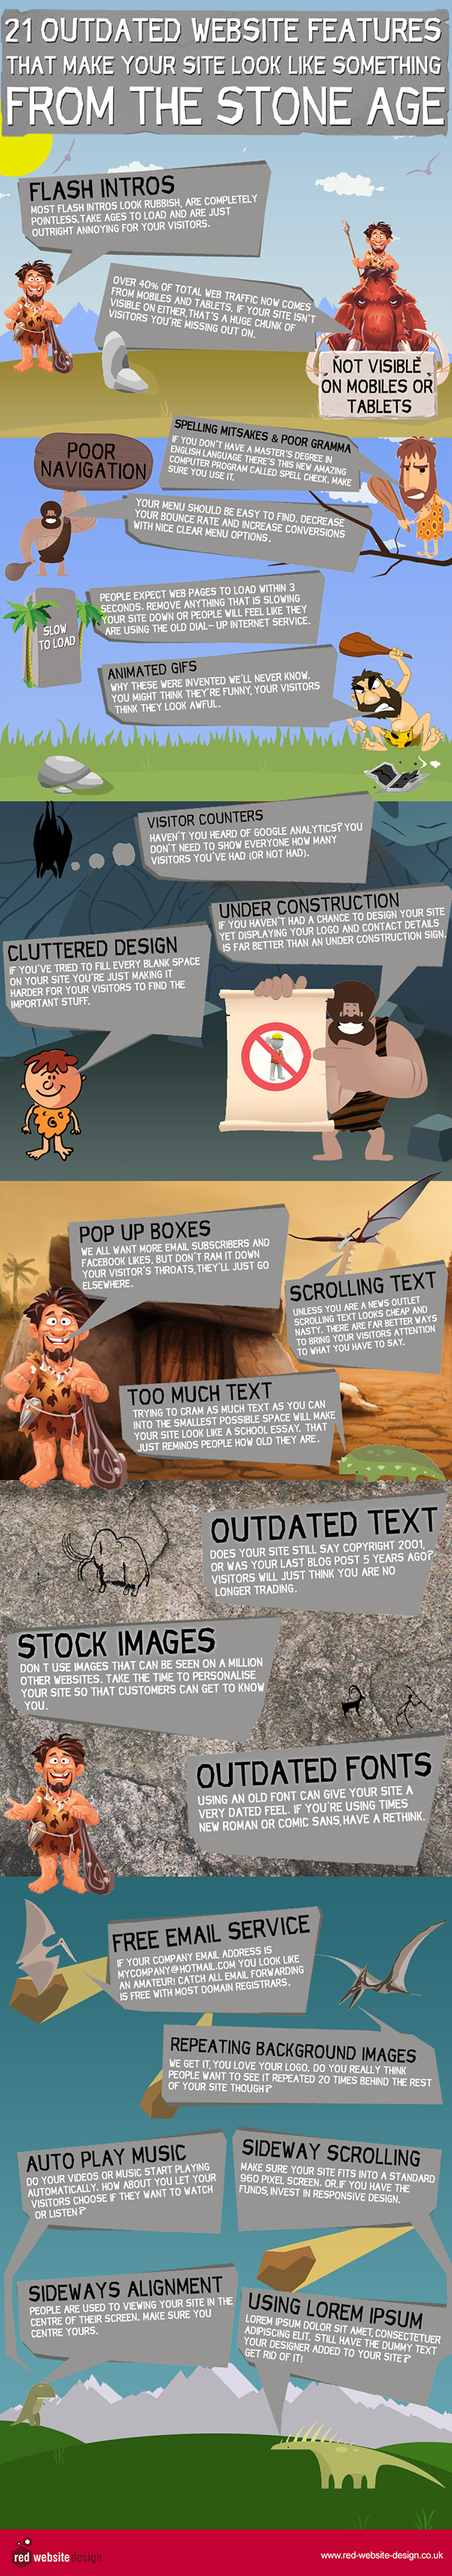 Outdated Features That Make Your Web Site Look Reminiscent of the Stone Age